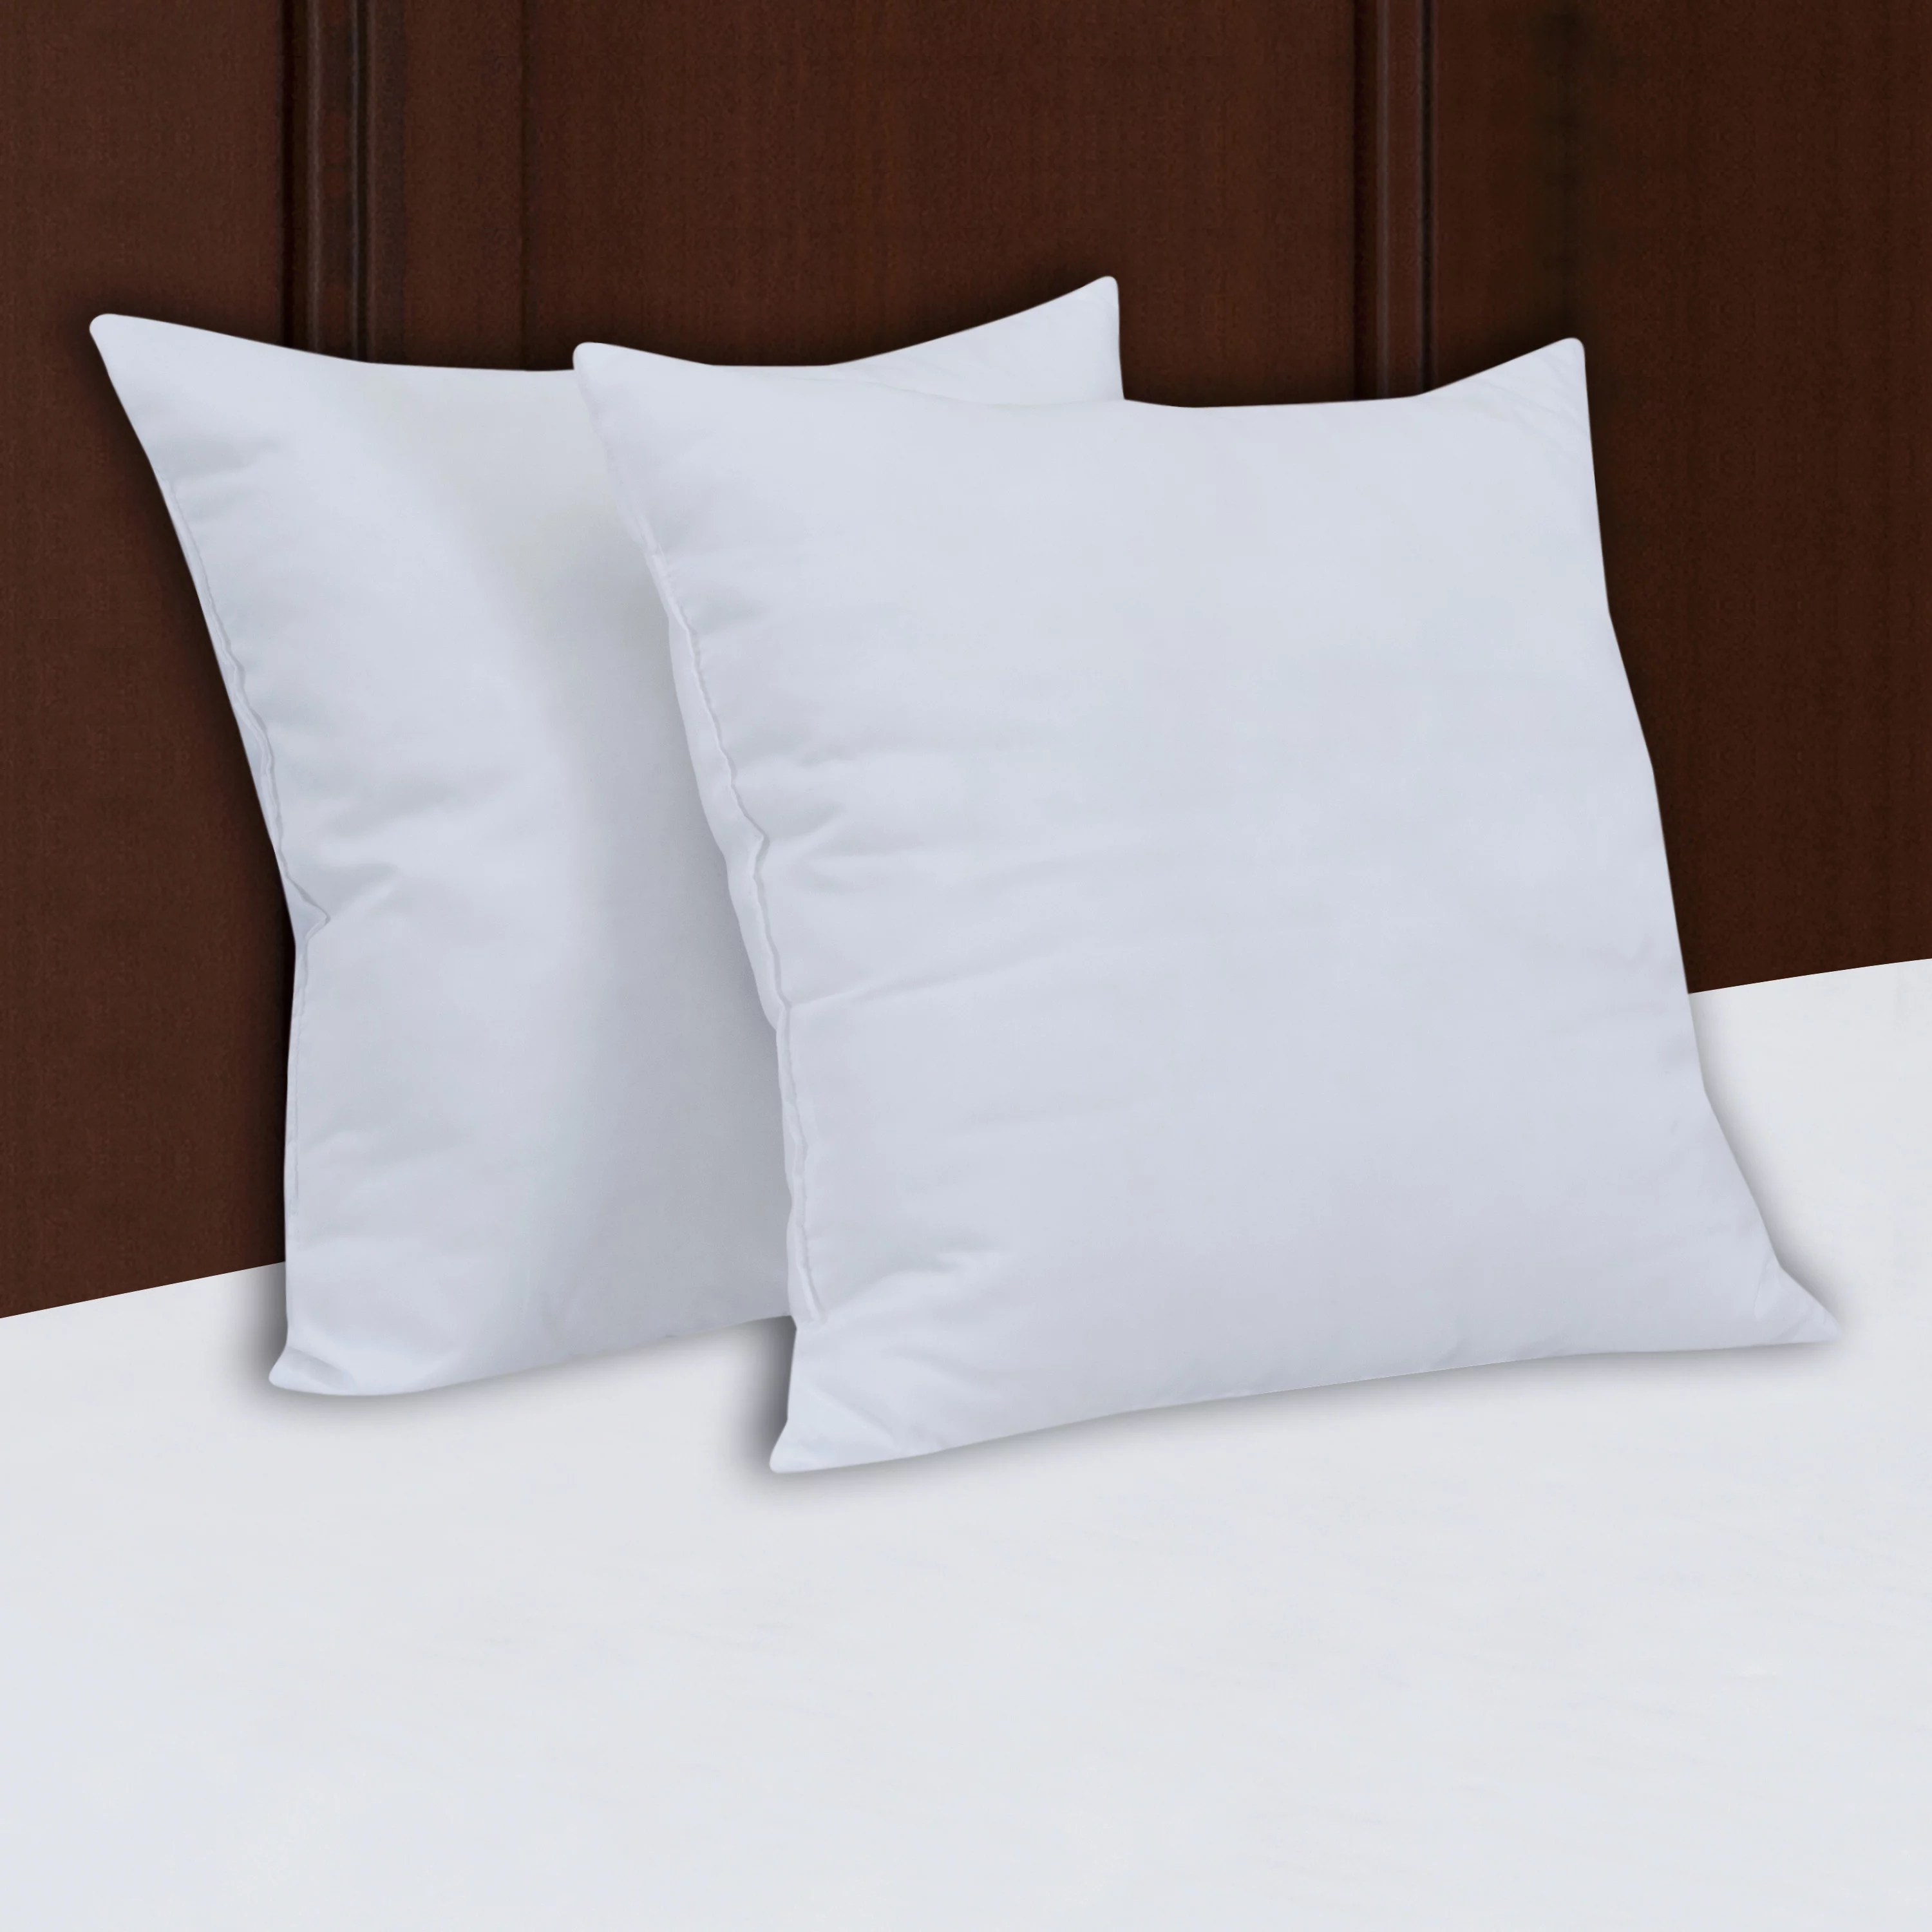 mainstays decorative pillow insert 100 polyester 18 x18 set of 2